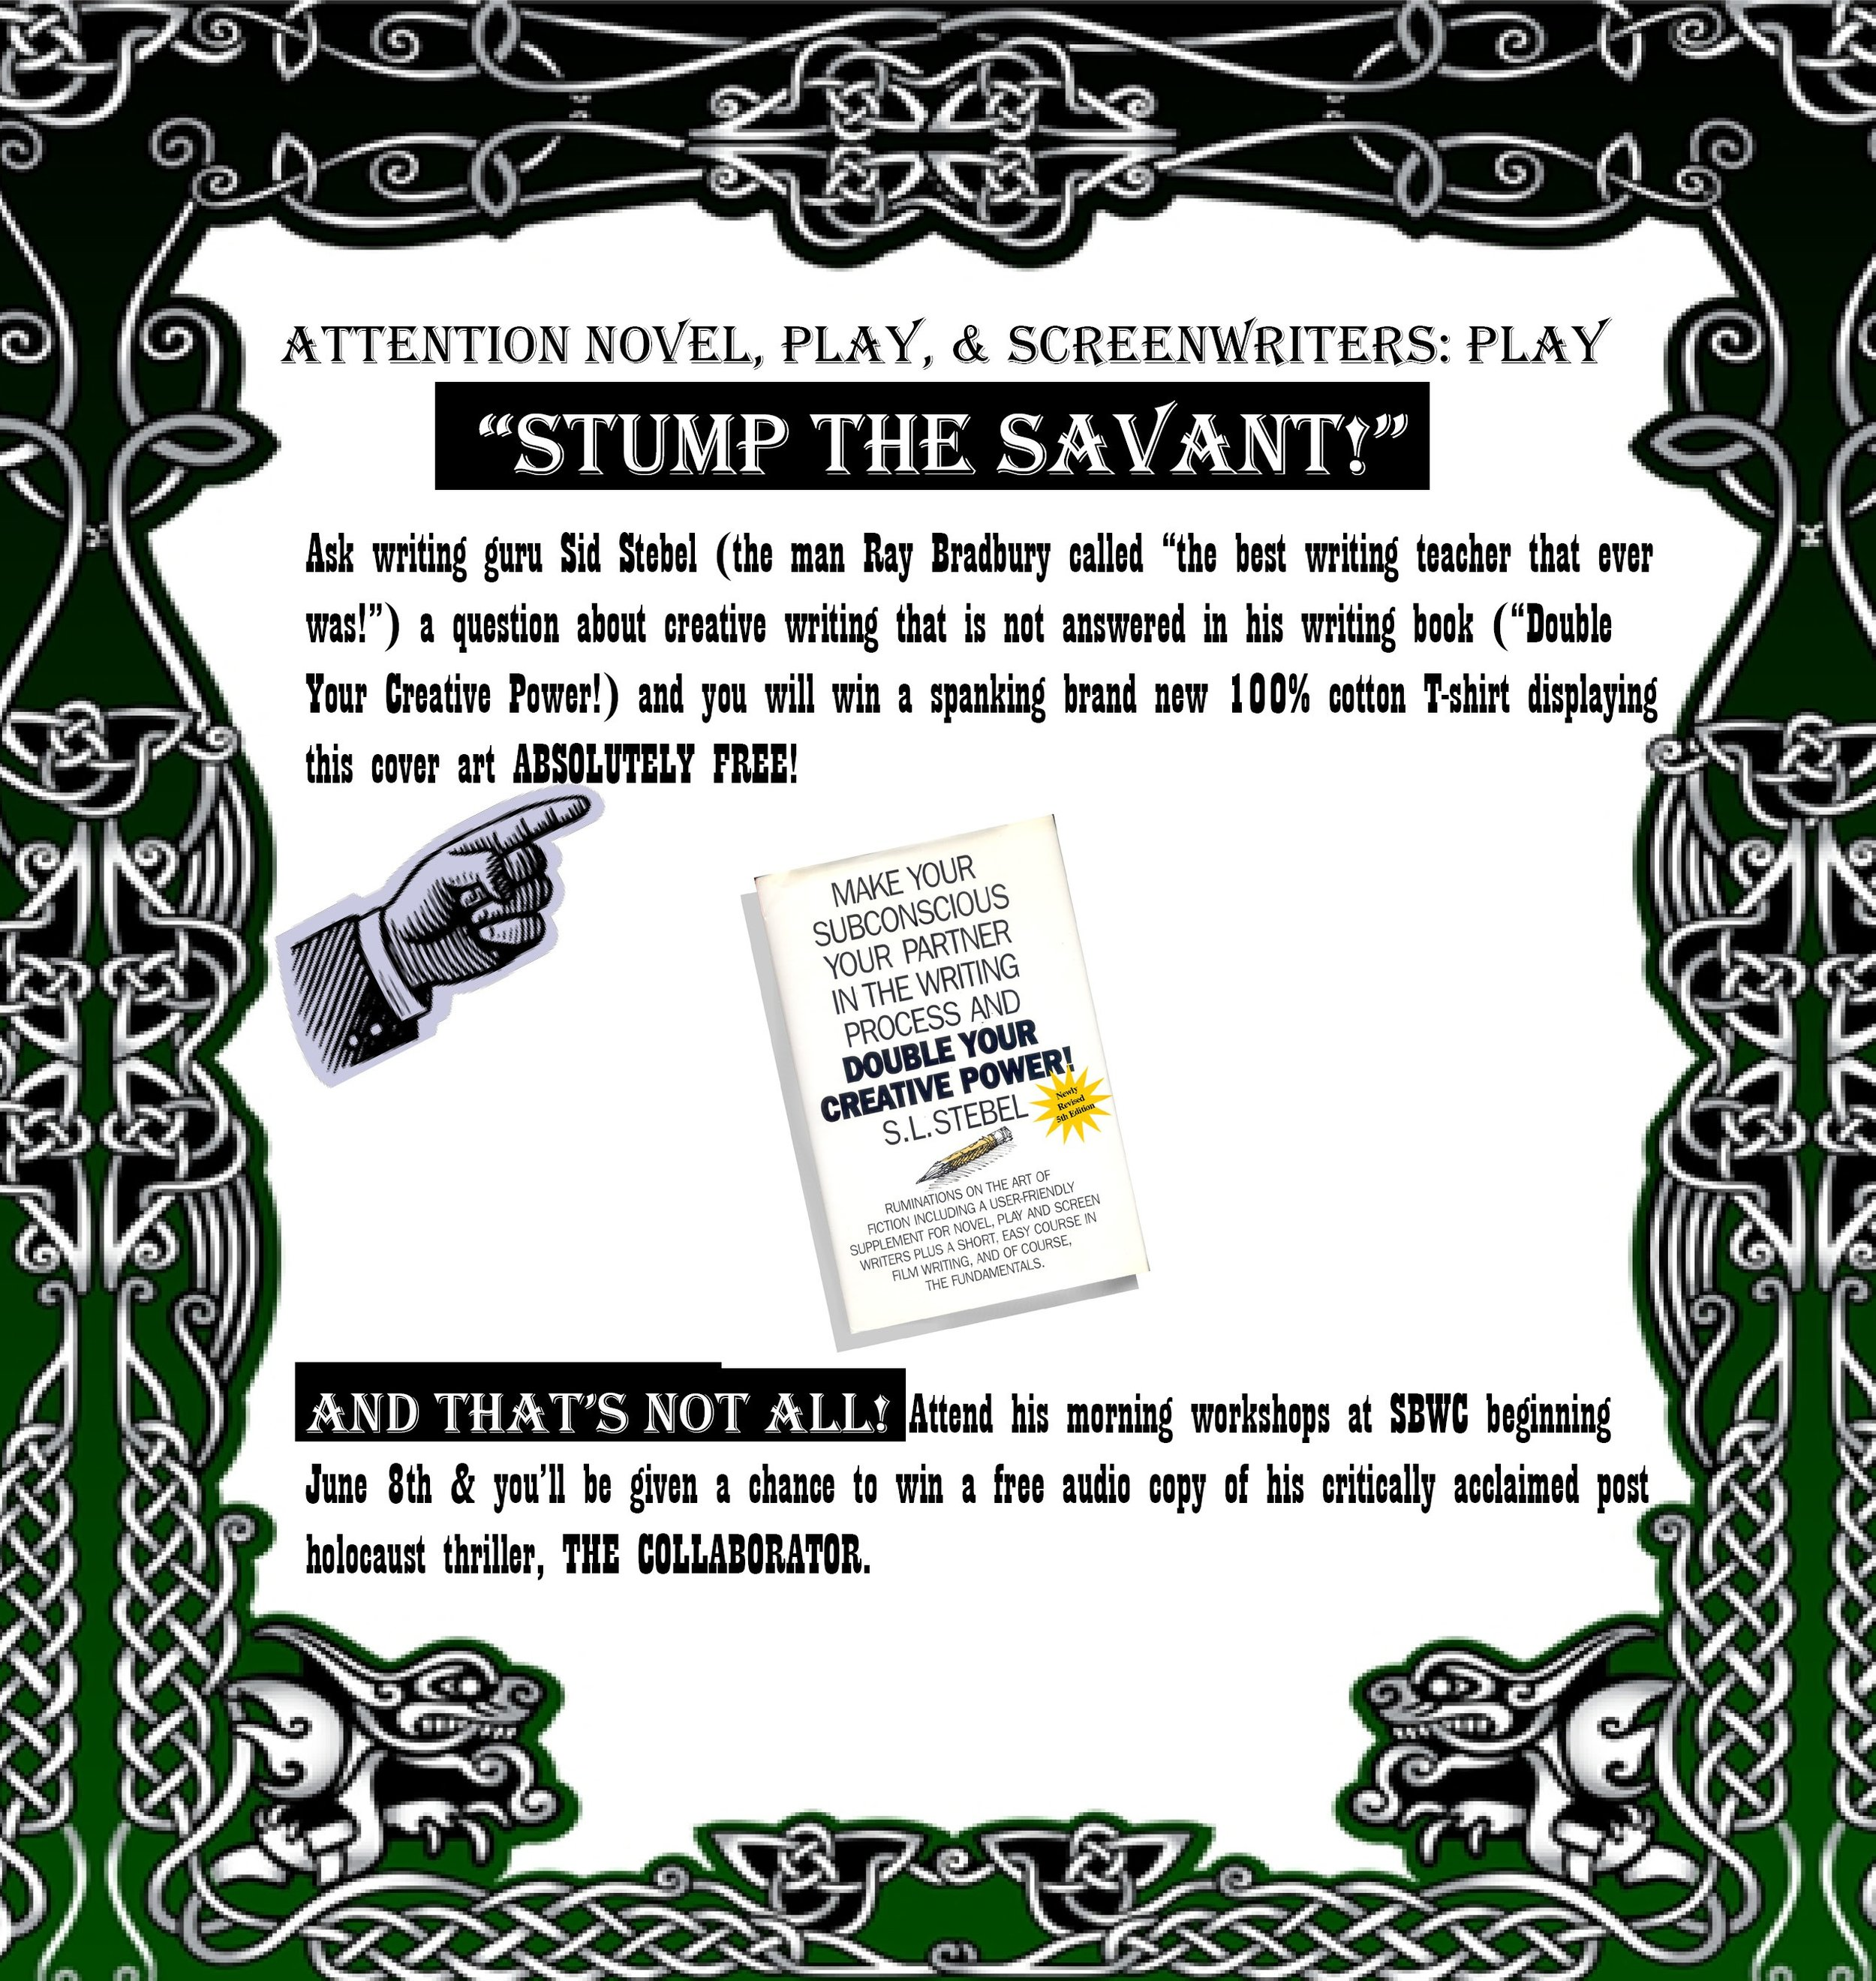 Stump the Savant